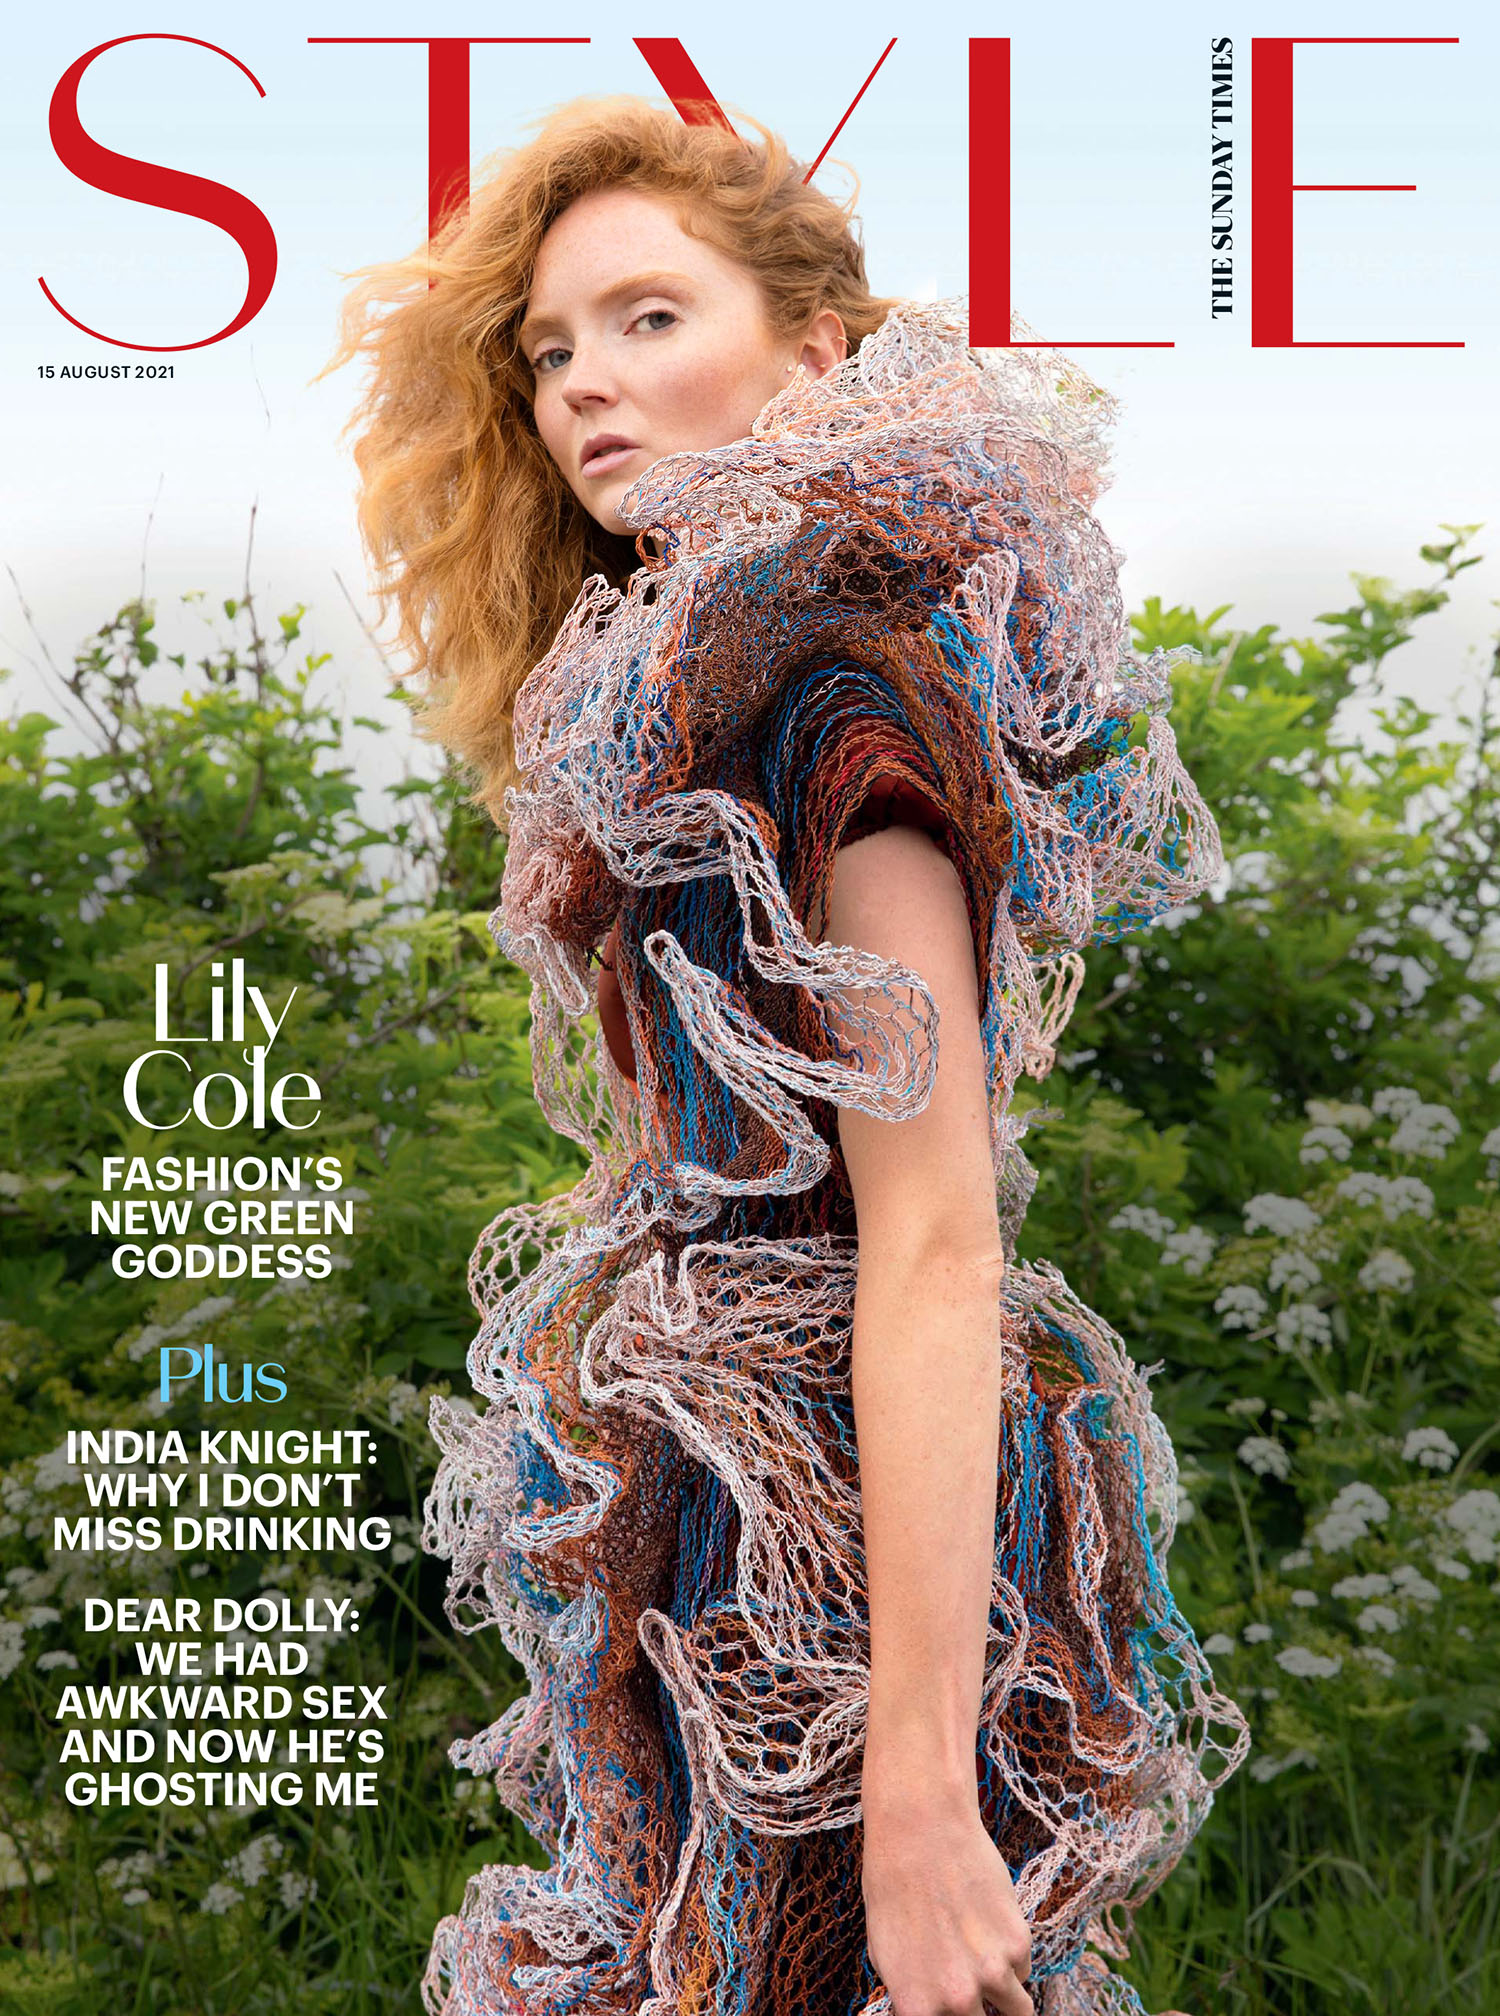 Lily Cole covers The Sunday Times Style August 15th, 2021 by Jackie Nickerson